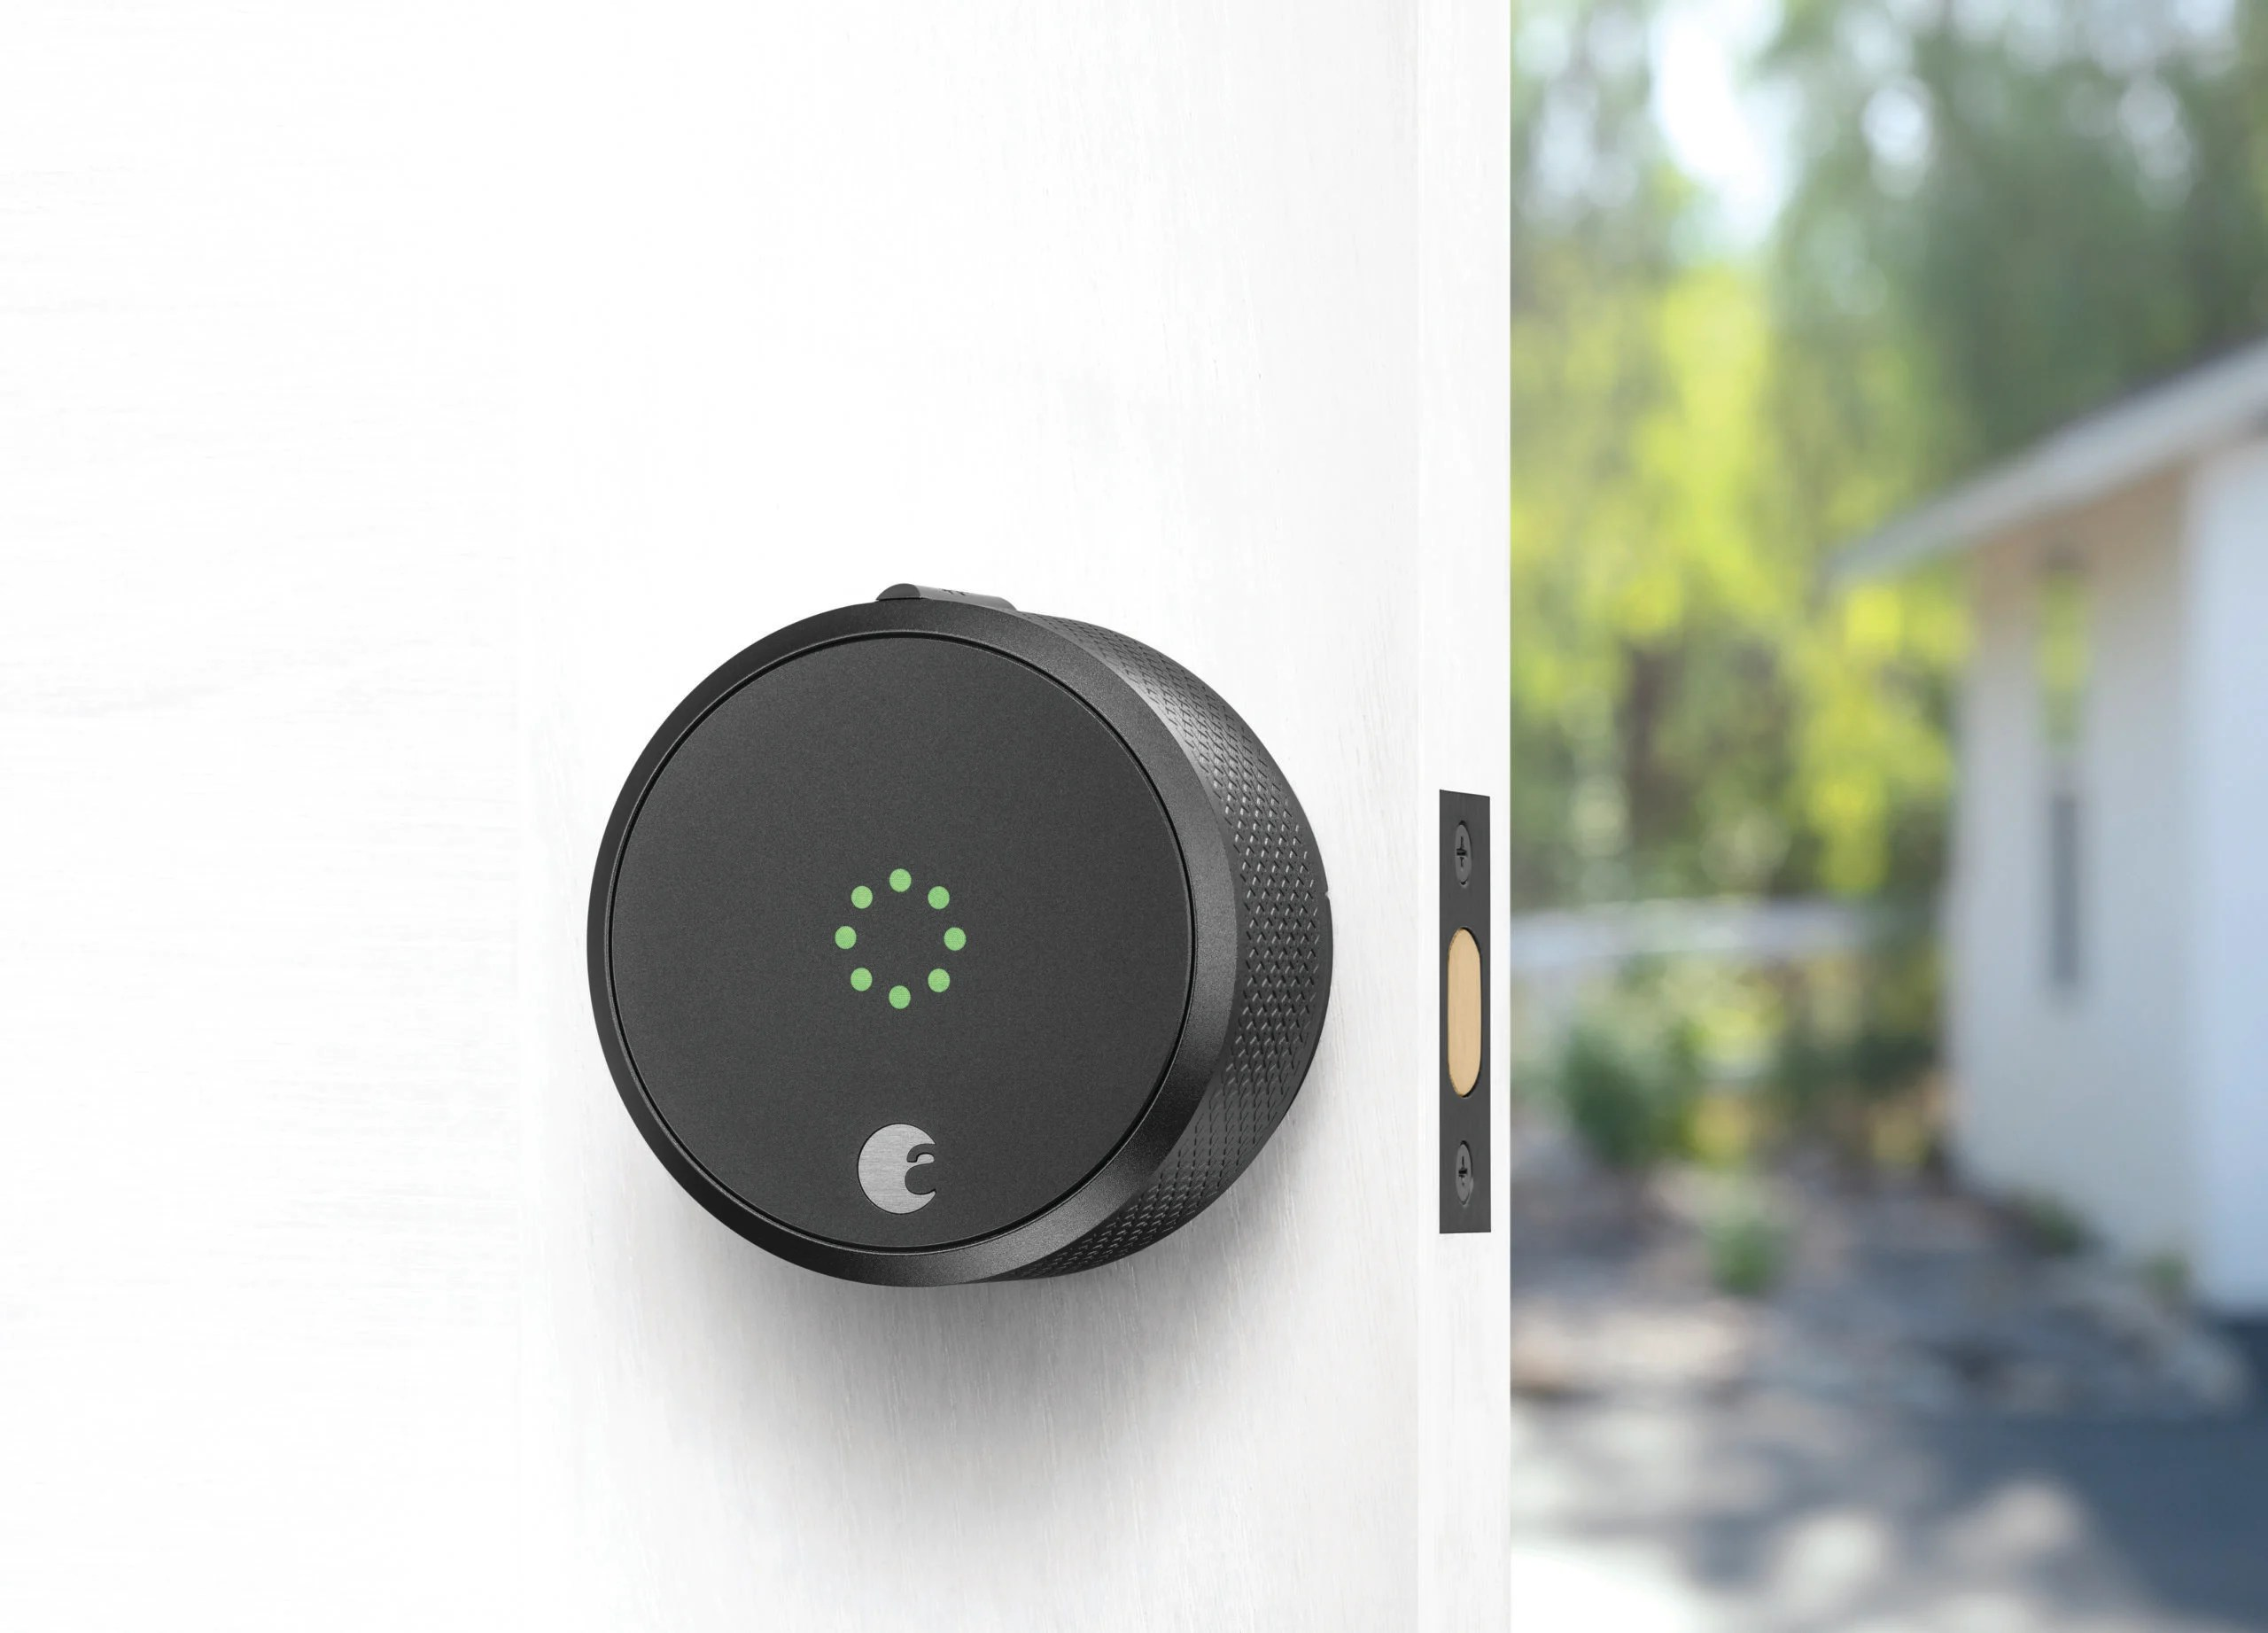 August Smart Lock Pro + Connect Wi-Fi Bridge. The smart lock that lets you manage access to your home from your phone (lock/unlock remotely; grant holiday visitors access when they arrive or keep an eye on your home while traveling).